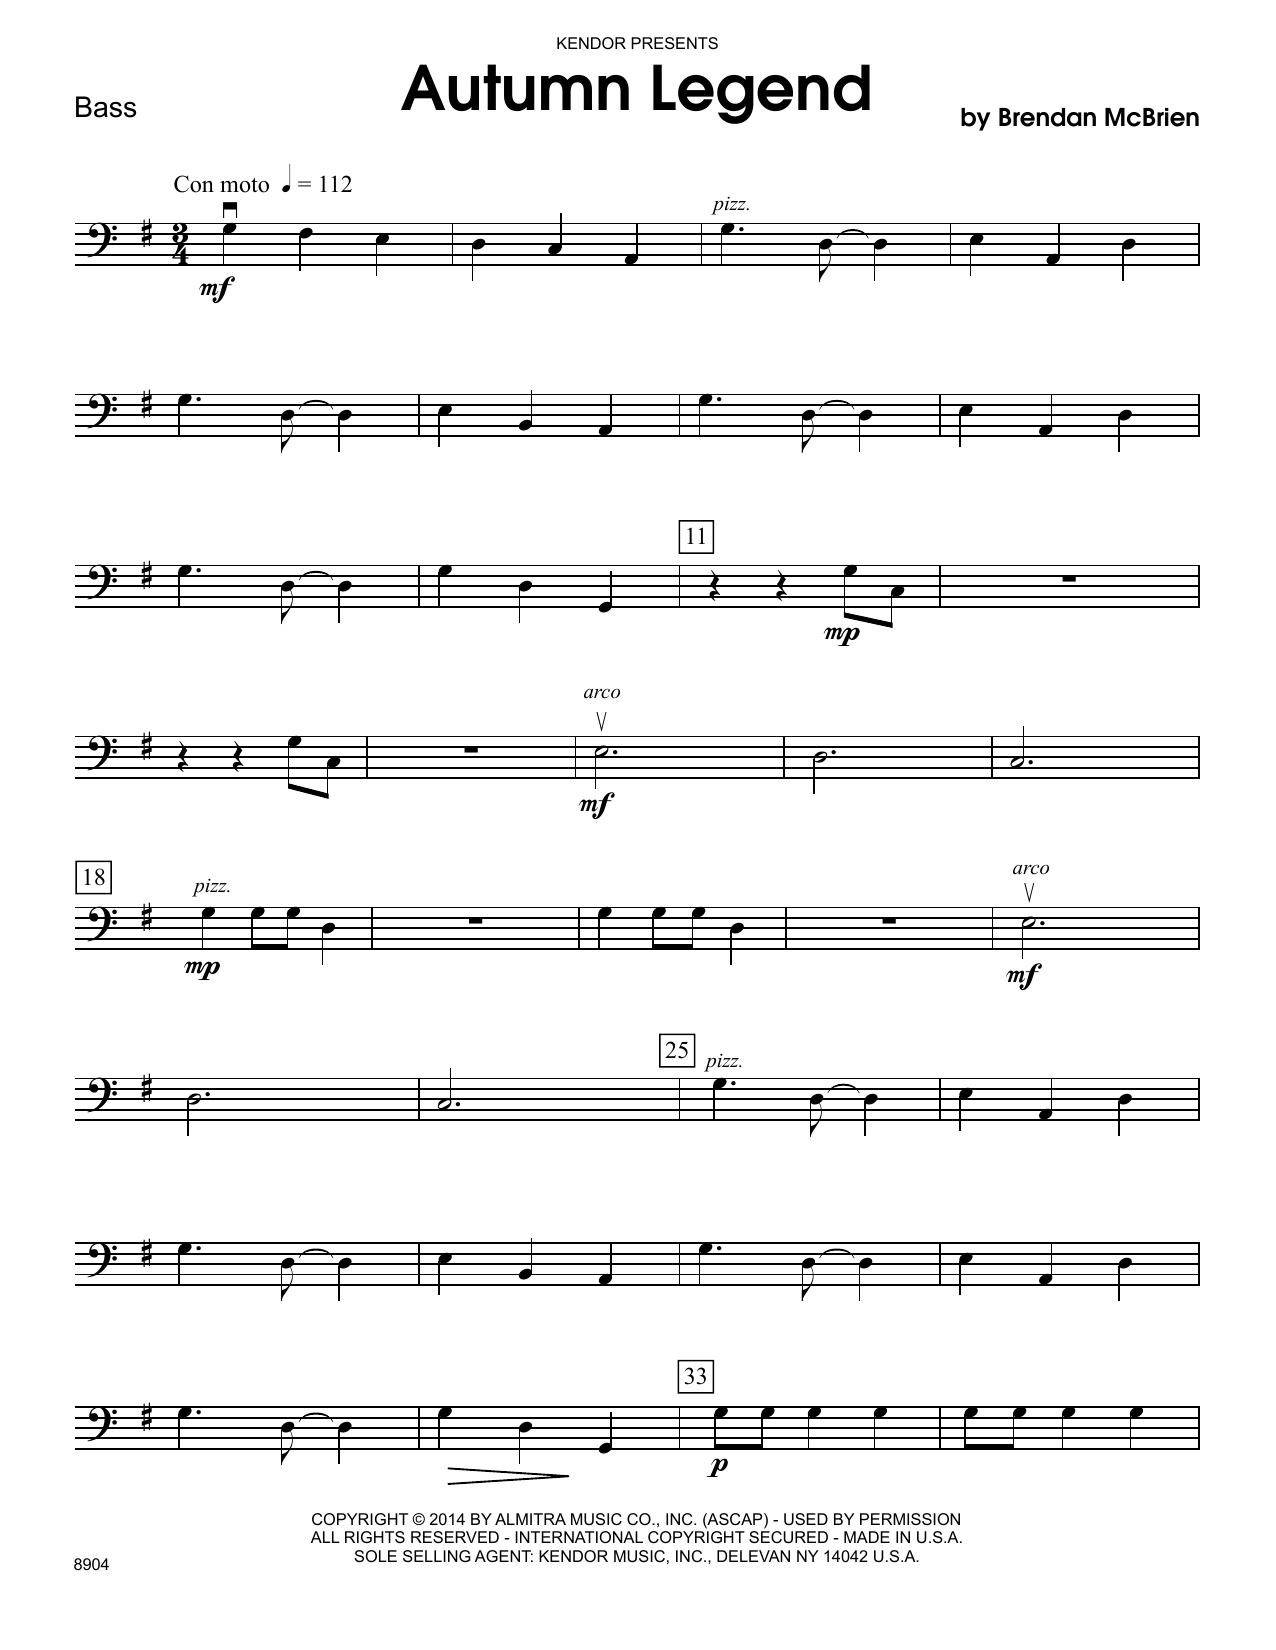 Brendan McBrien Autumn Legend - Bass sheet music notes and chords. Download Printable PDF.